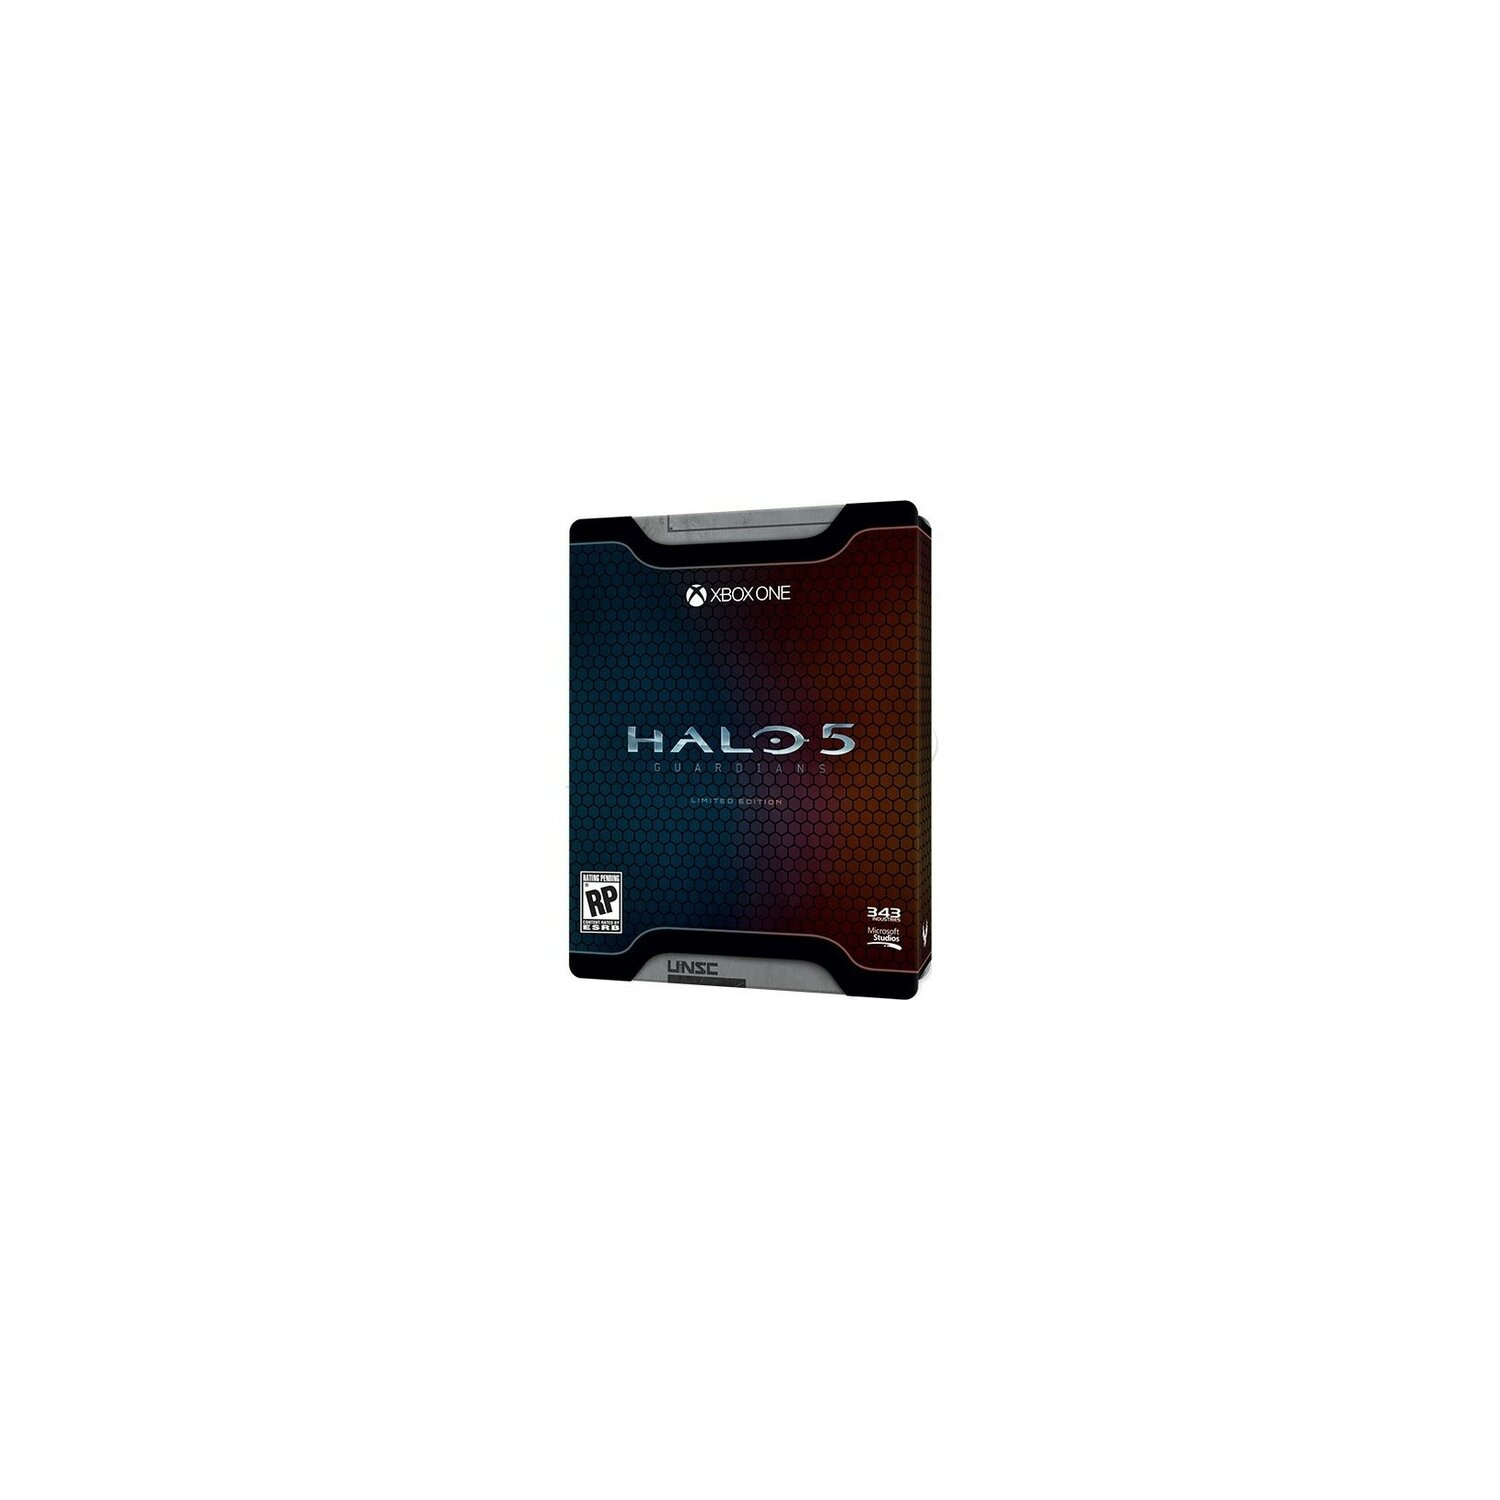 Gra Xbox One Halo 5 Guardians Limited Edition